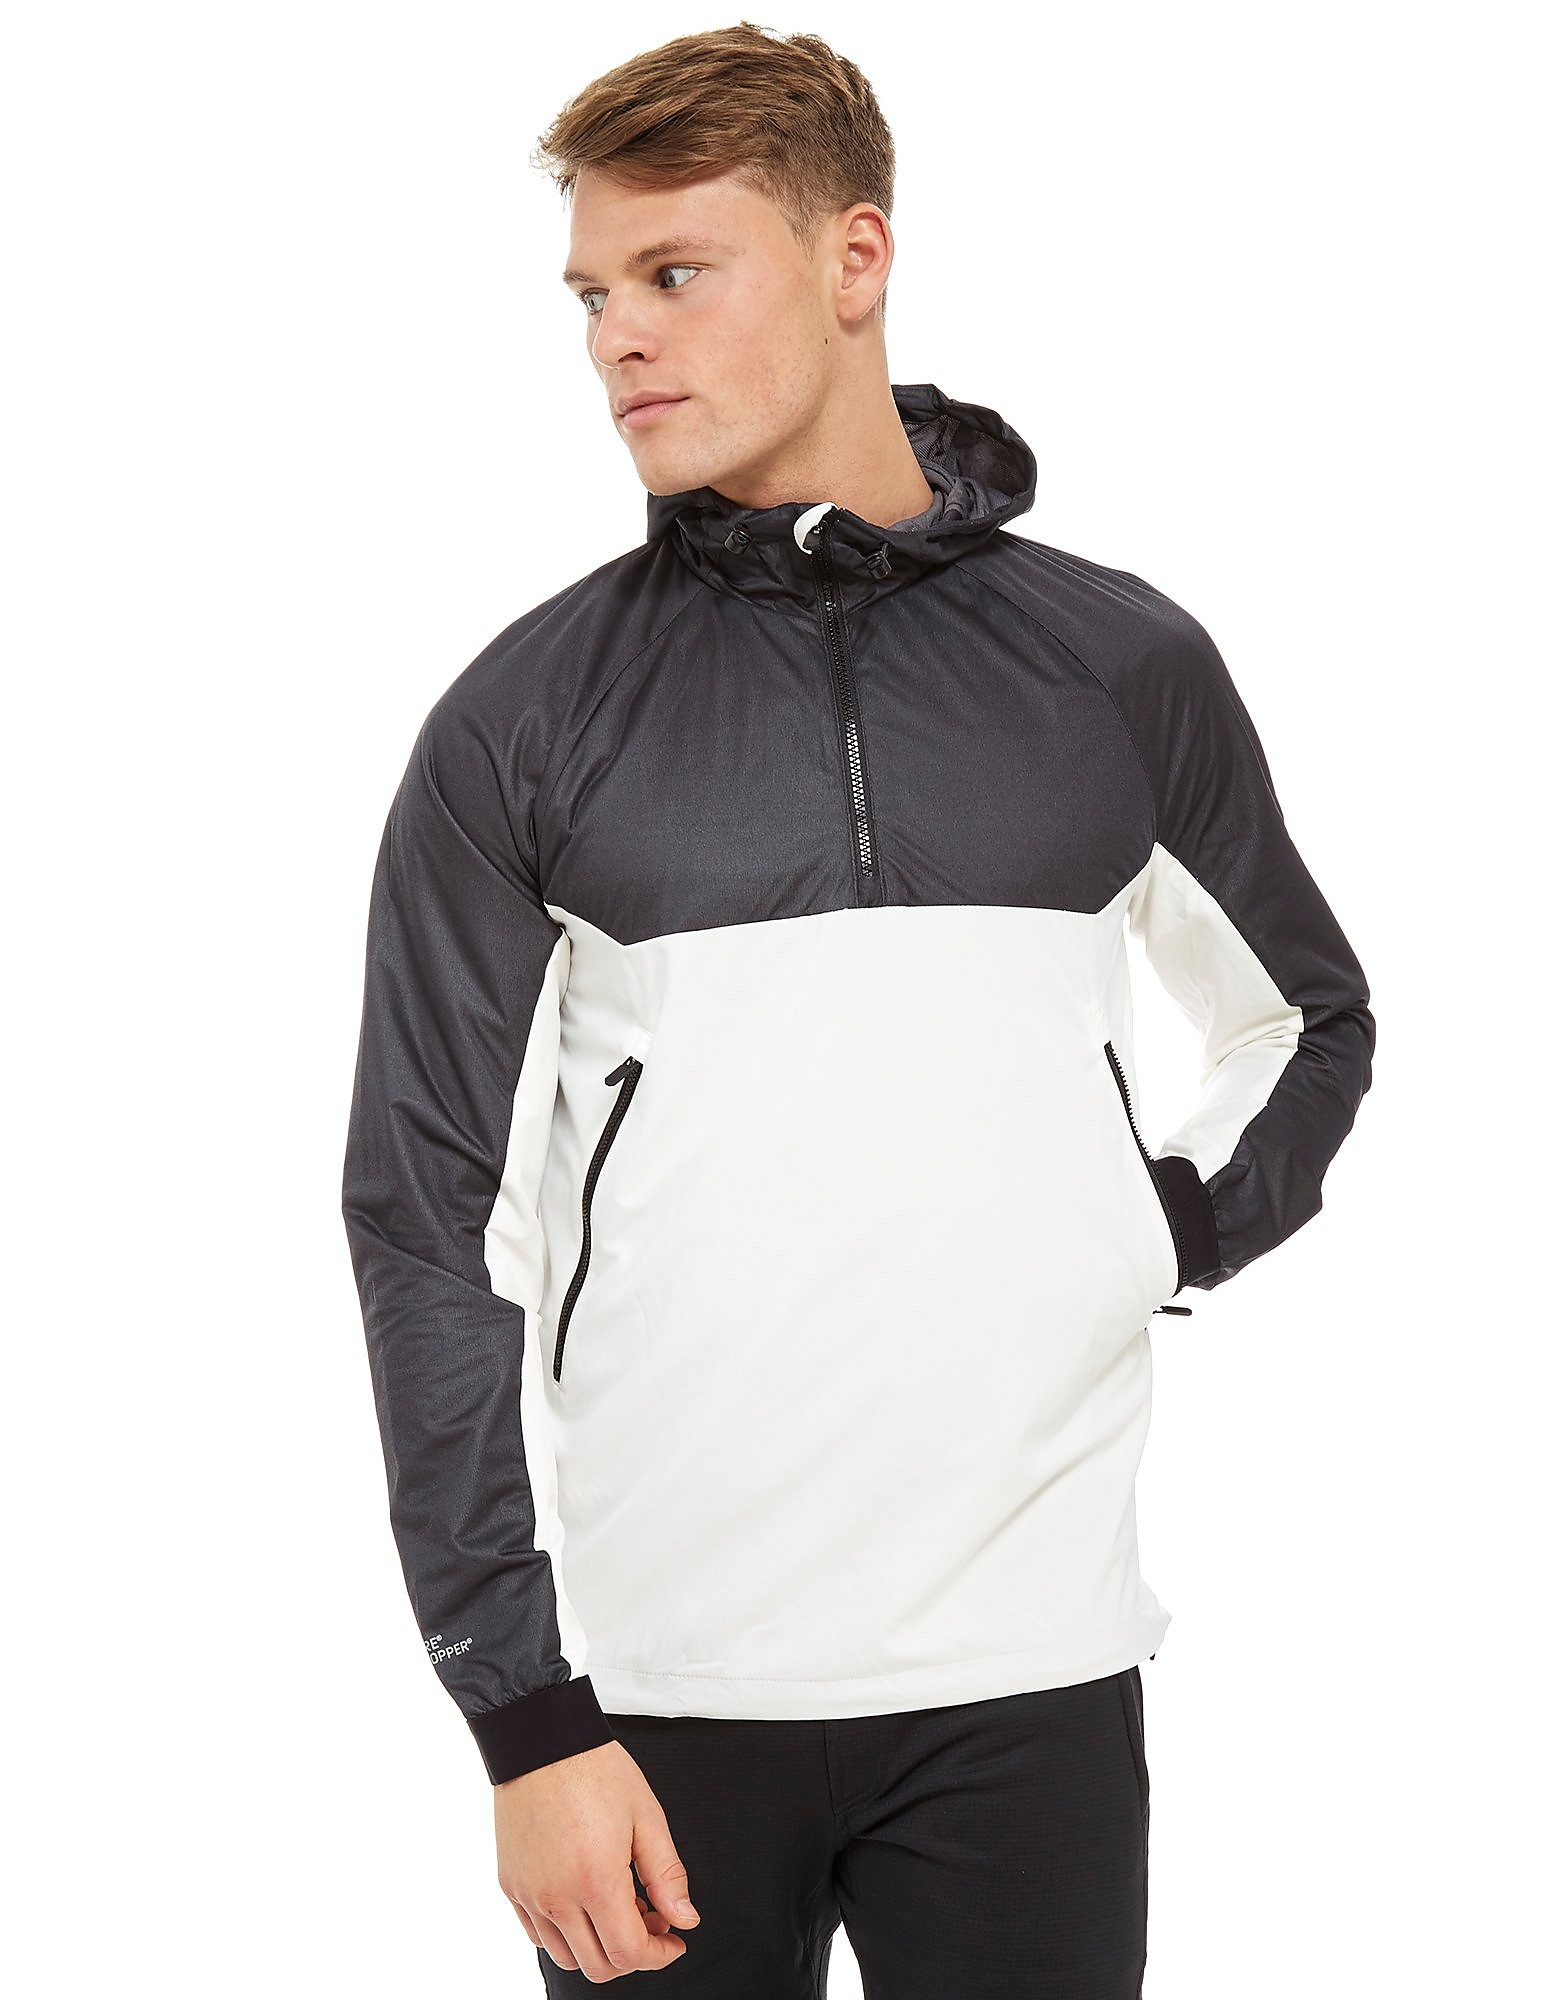 Under Armour Unstoppable GORE-TEX 1/2 Zip Jacket